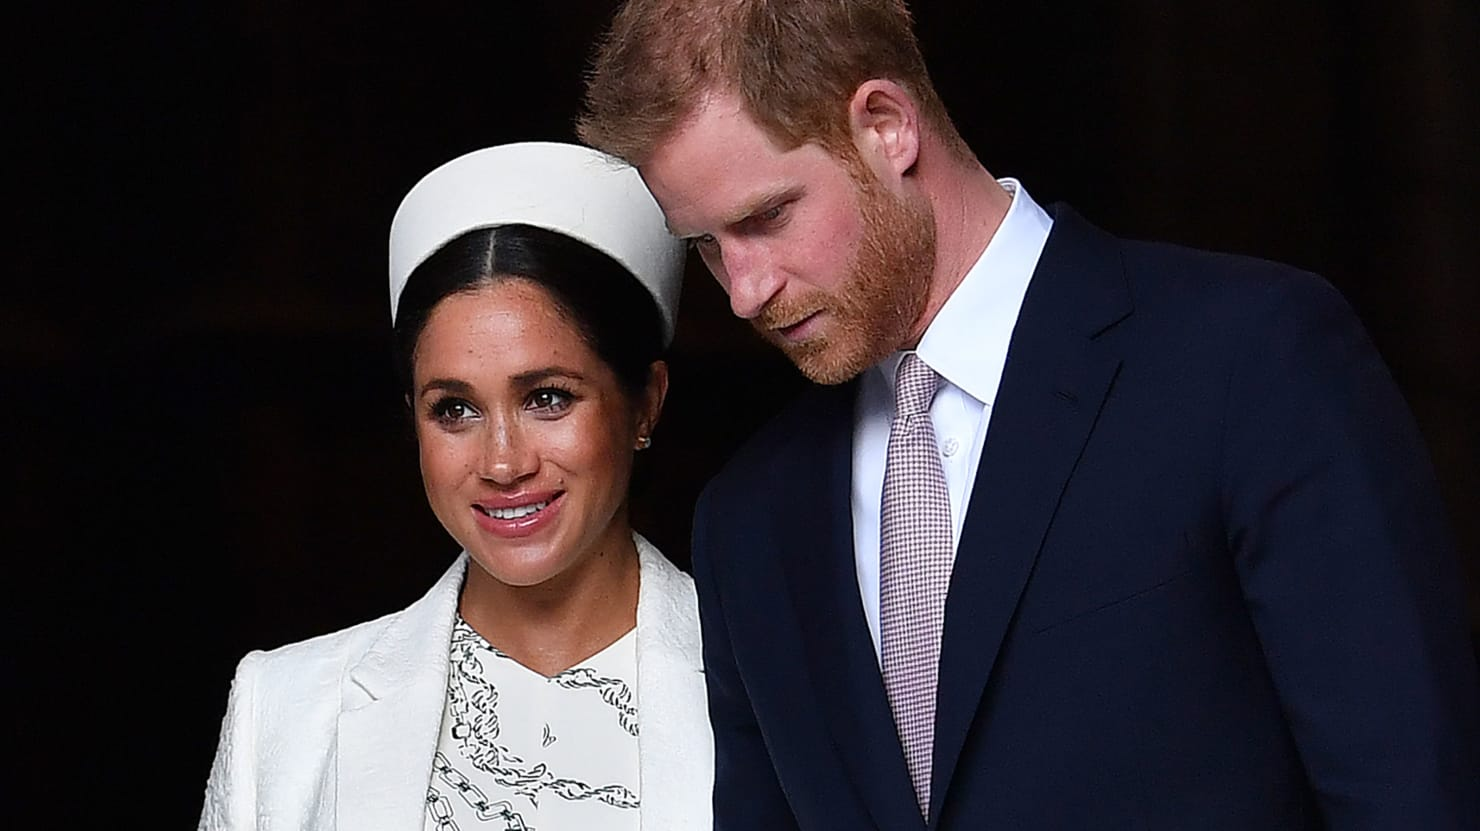 Meghan Markle's Miscarriage May Lead to a Royal Reset